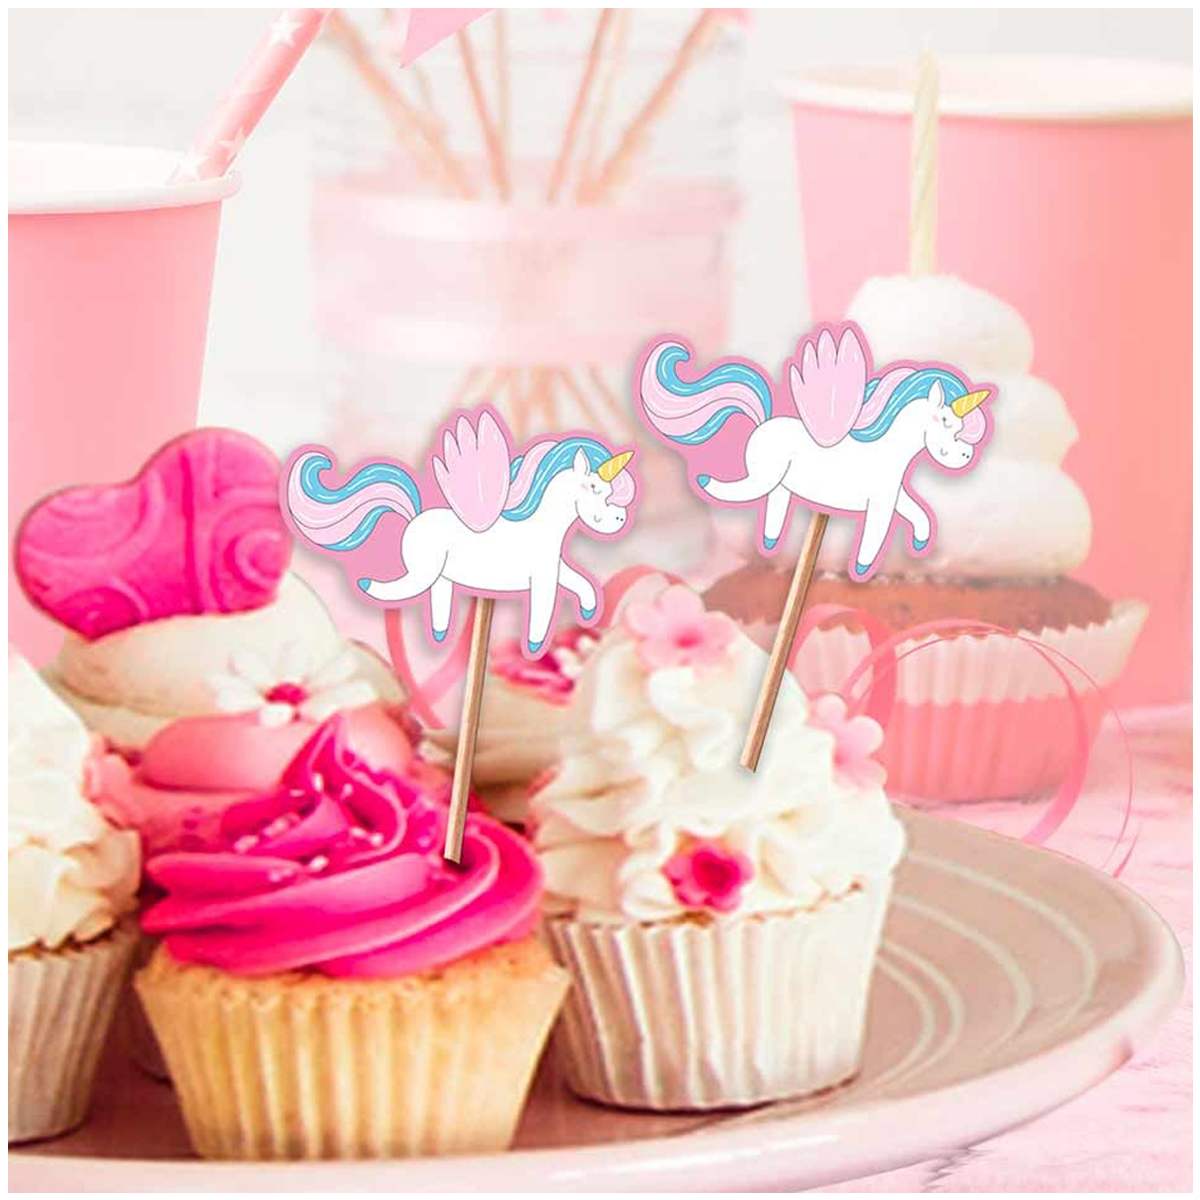 12 pics à gateau \'Licorne My Unicorn\' rose multicolore - 10 cm - [Q7304]